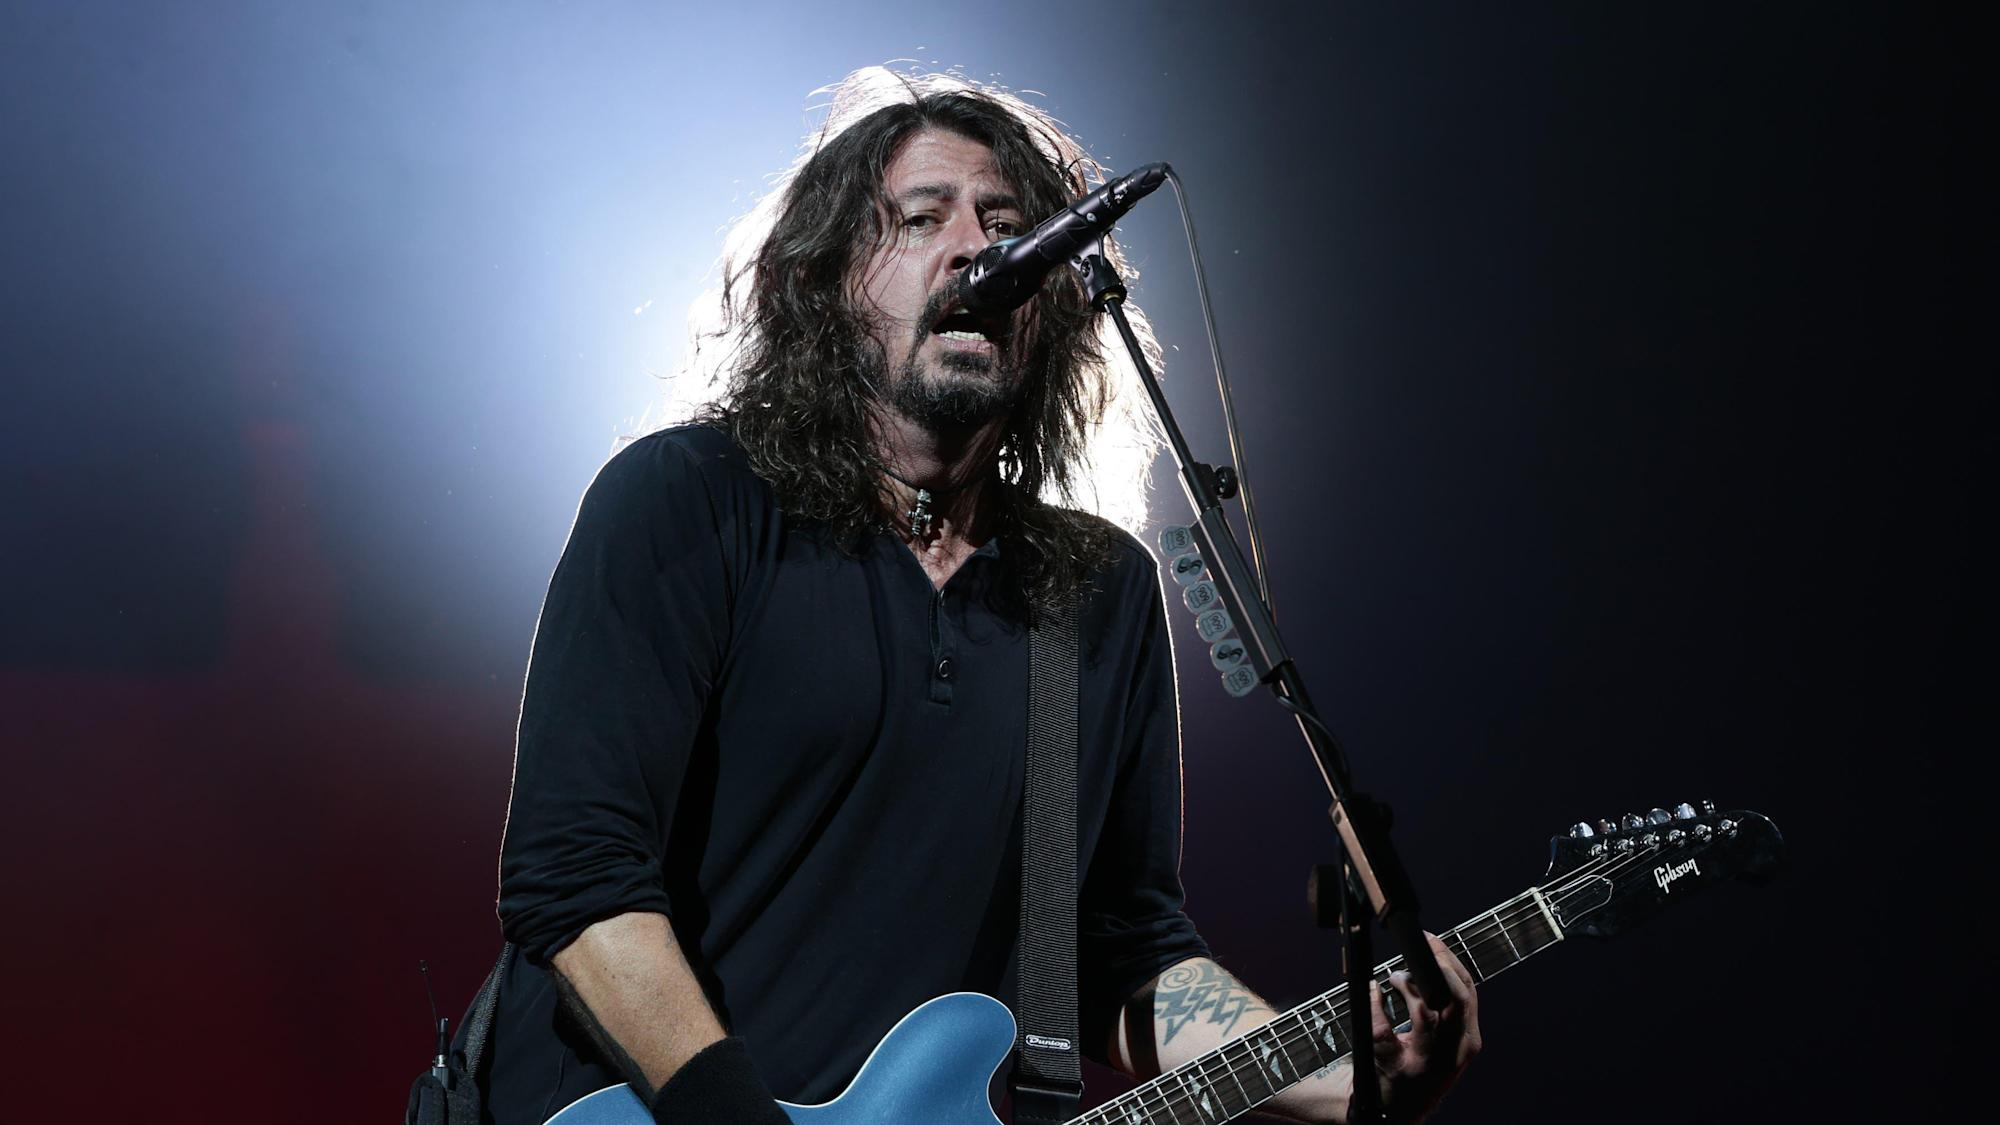 Dave Grohl to share memories of 'a life lived loud' with memoir The Storyteller